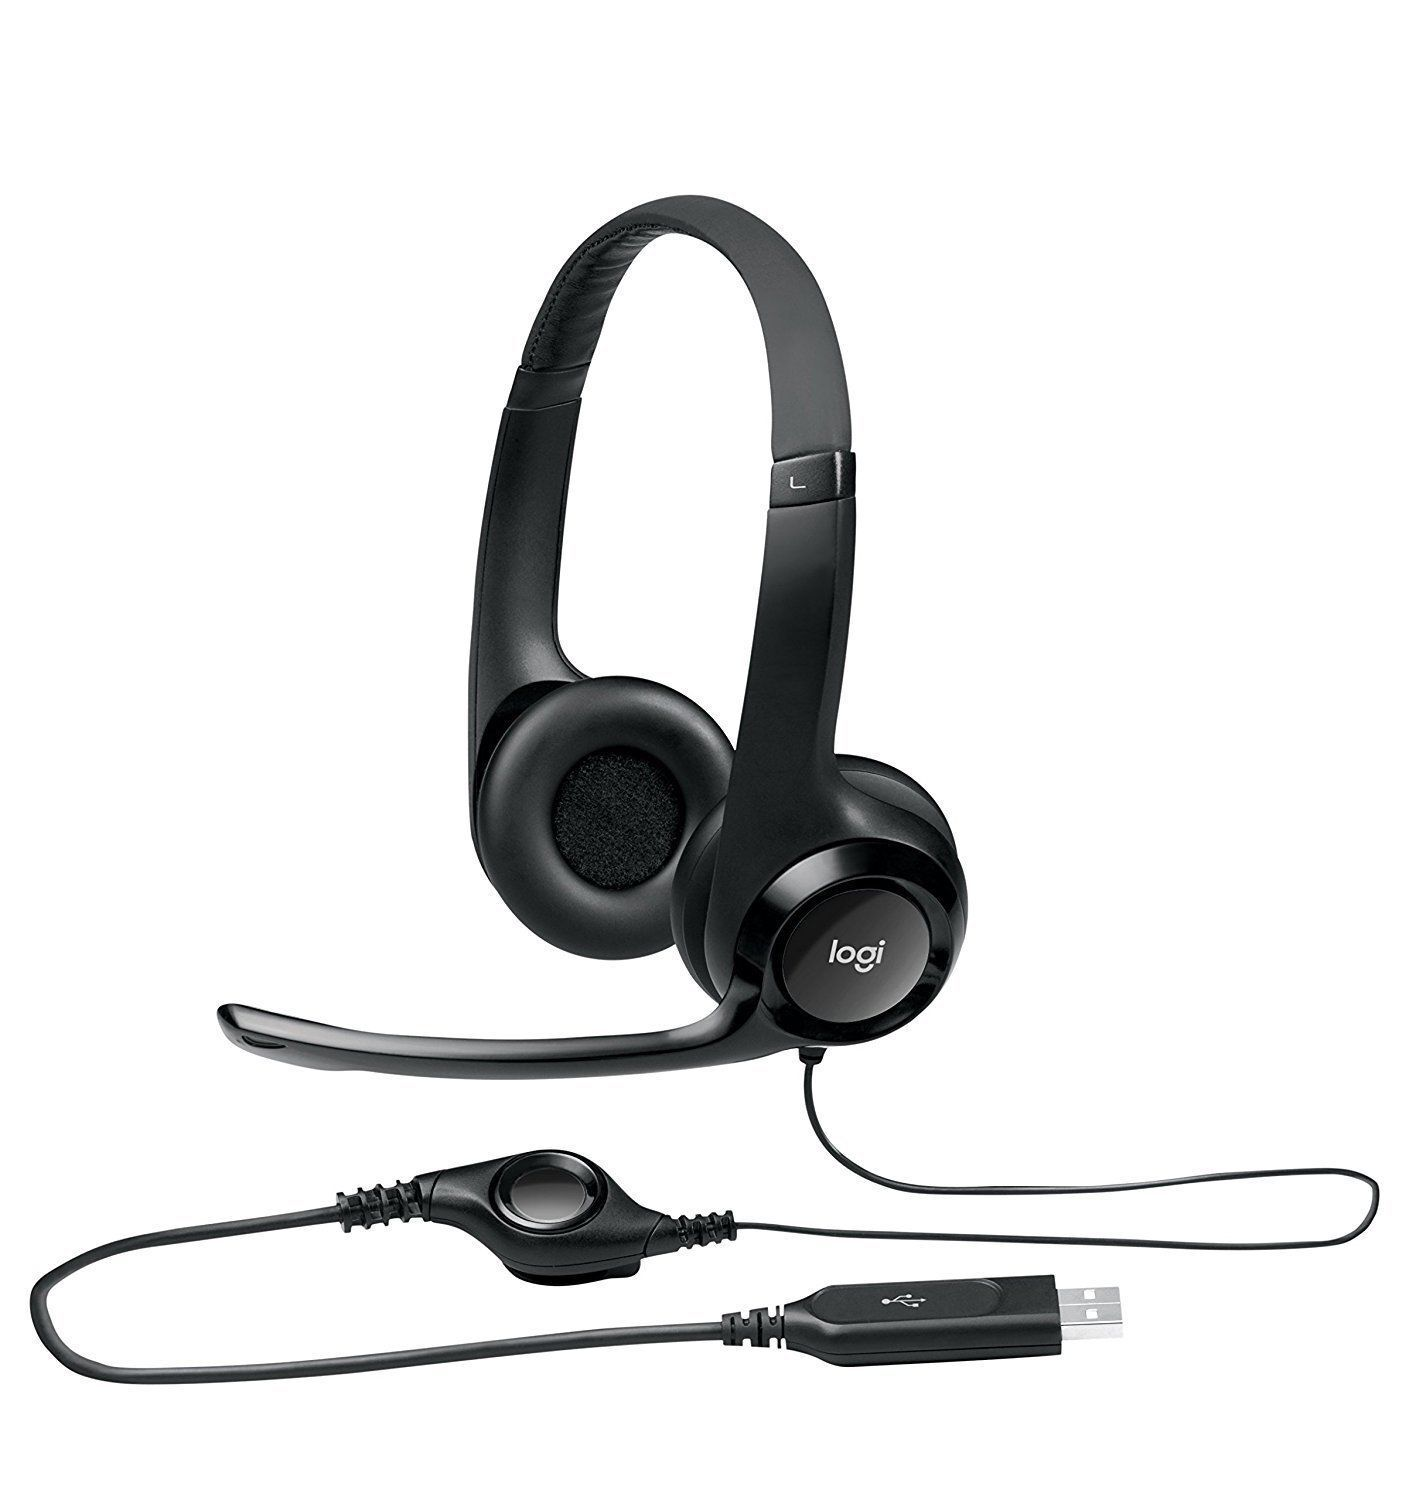 Logitech H390 Comfort USB Wired PC Headset Internet Calls an